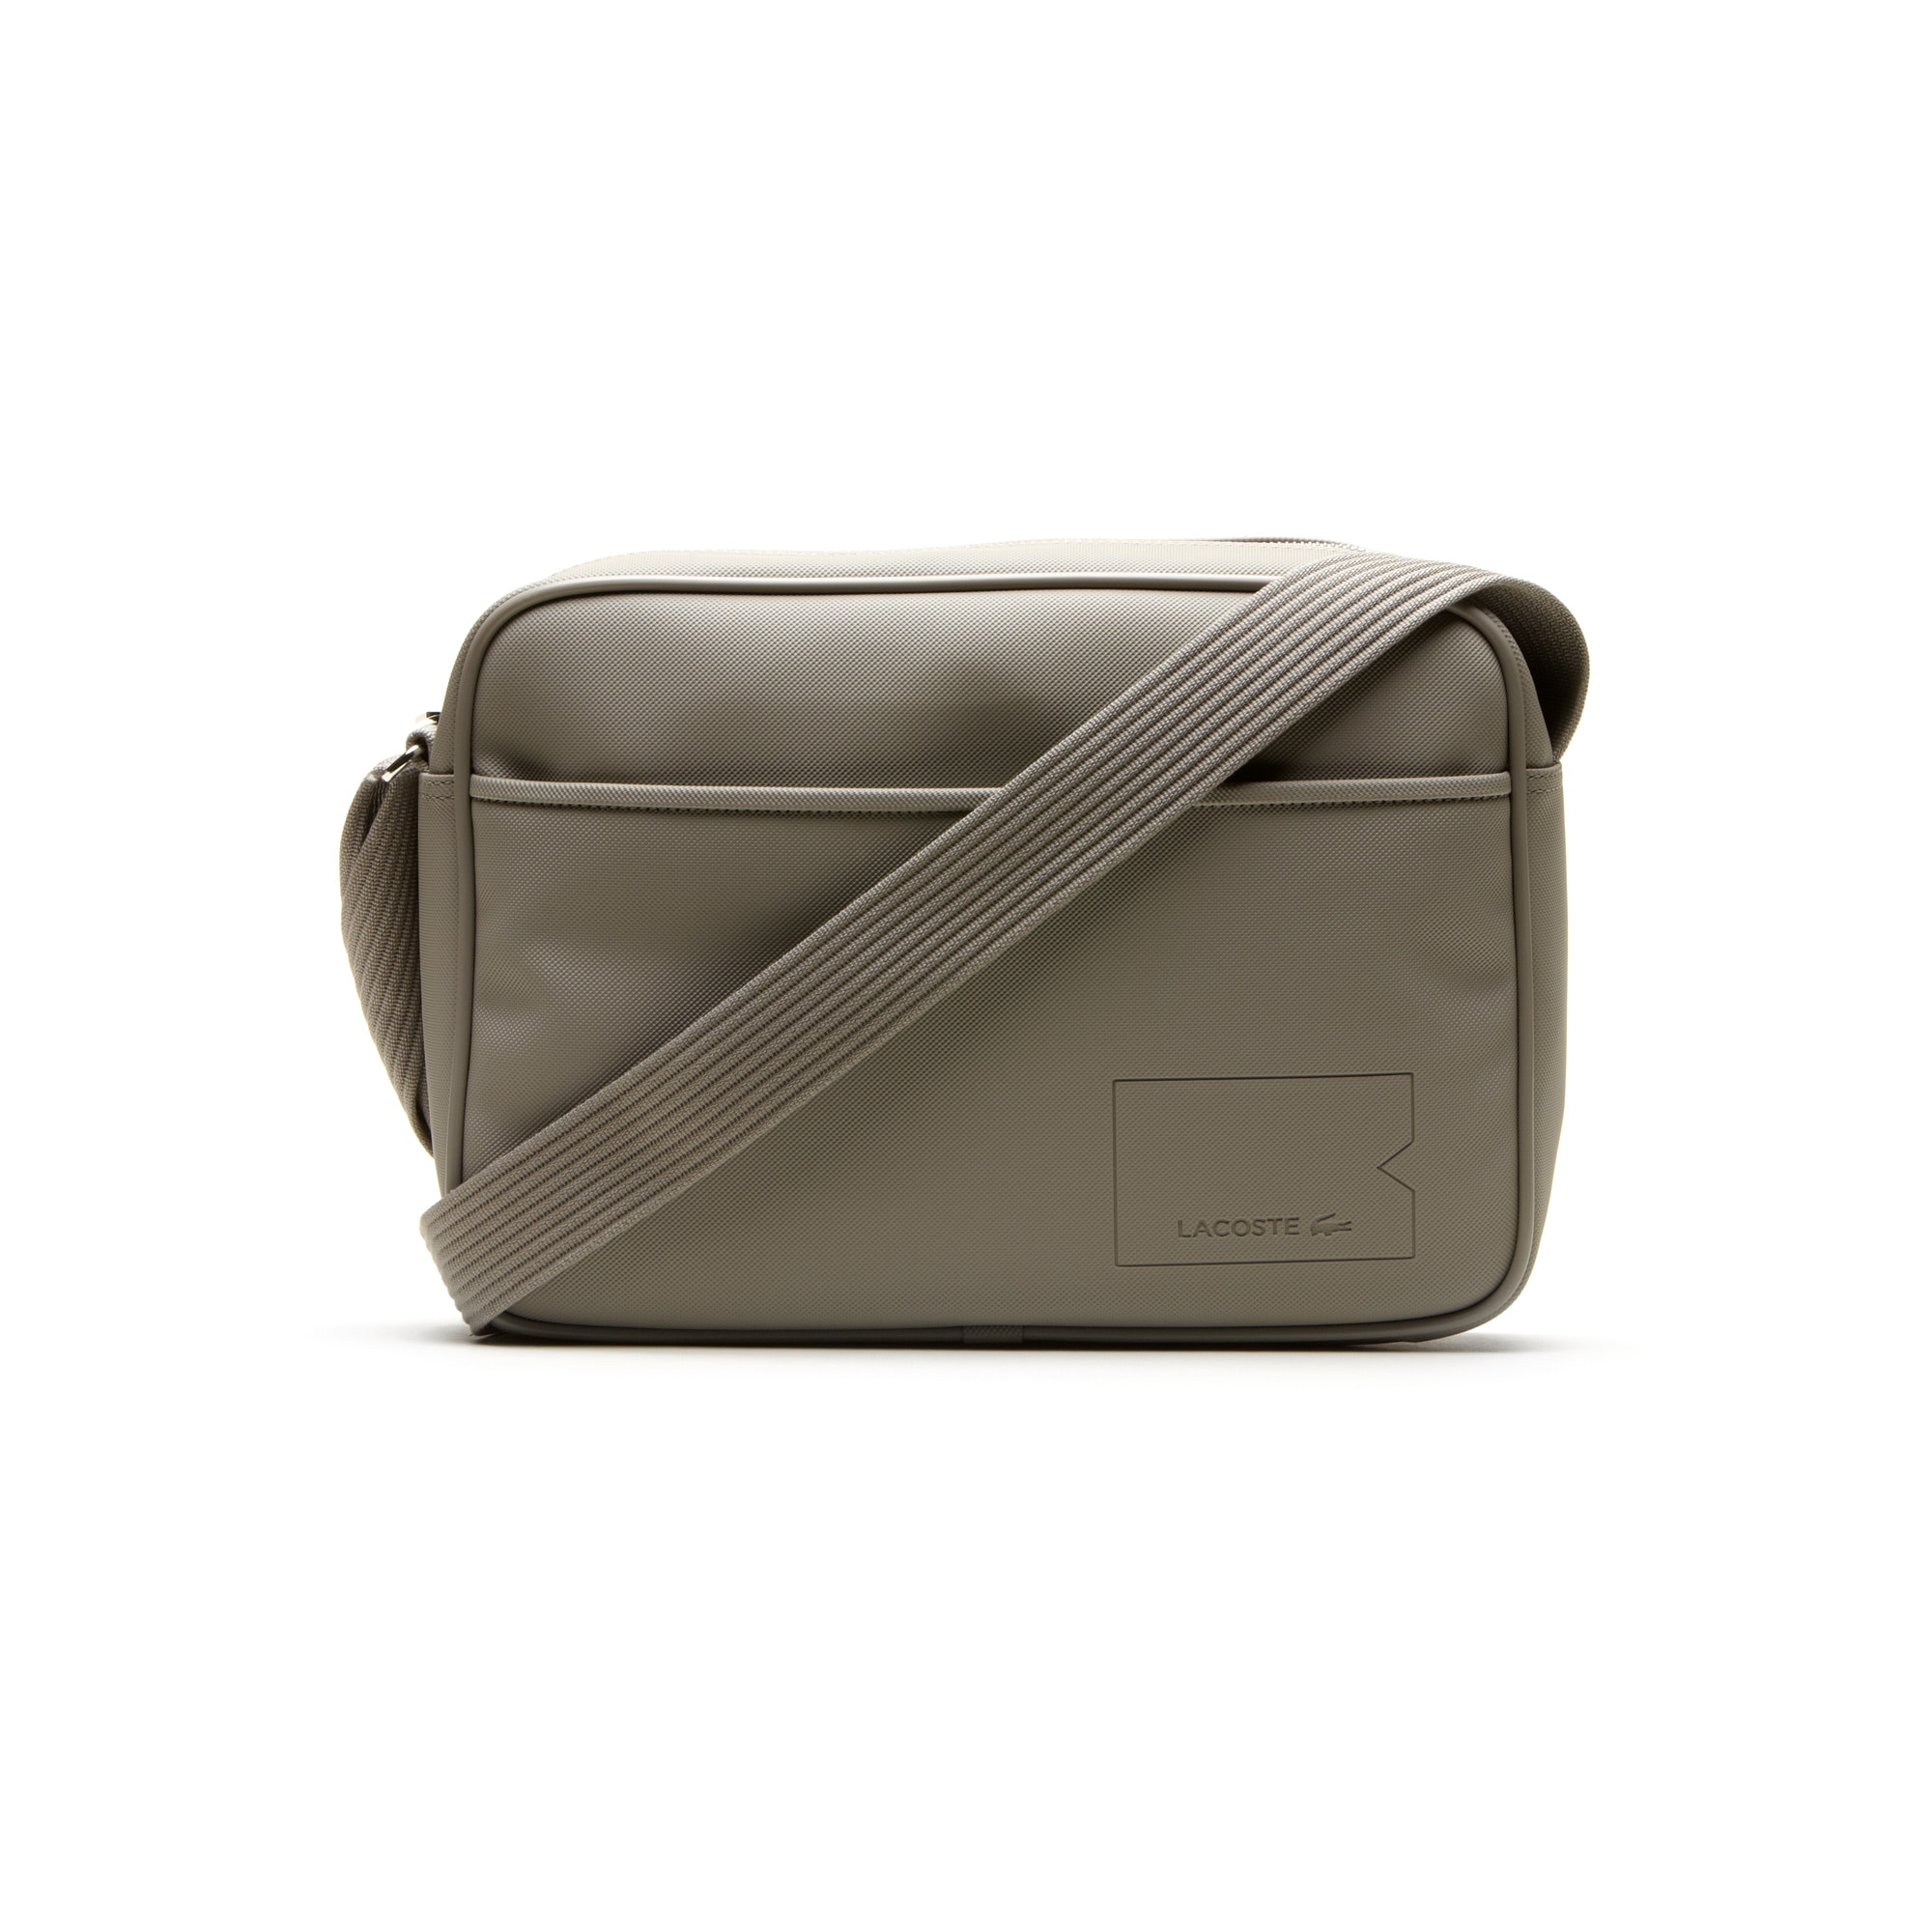 Sac airline Men's classic monochrome